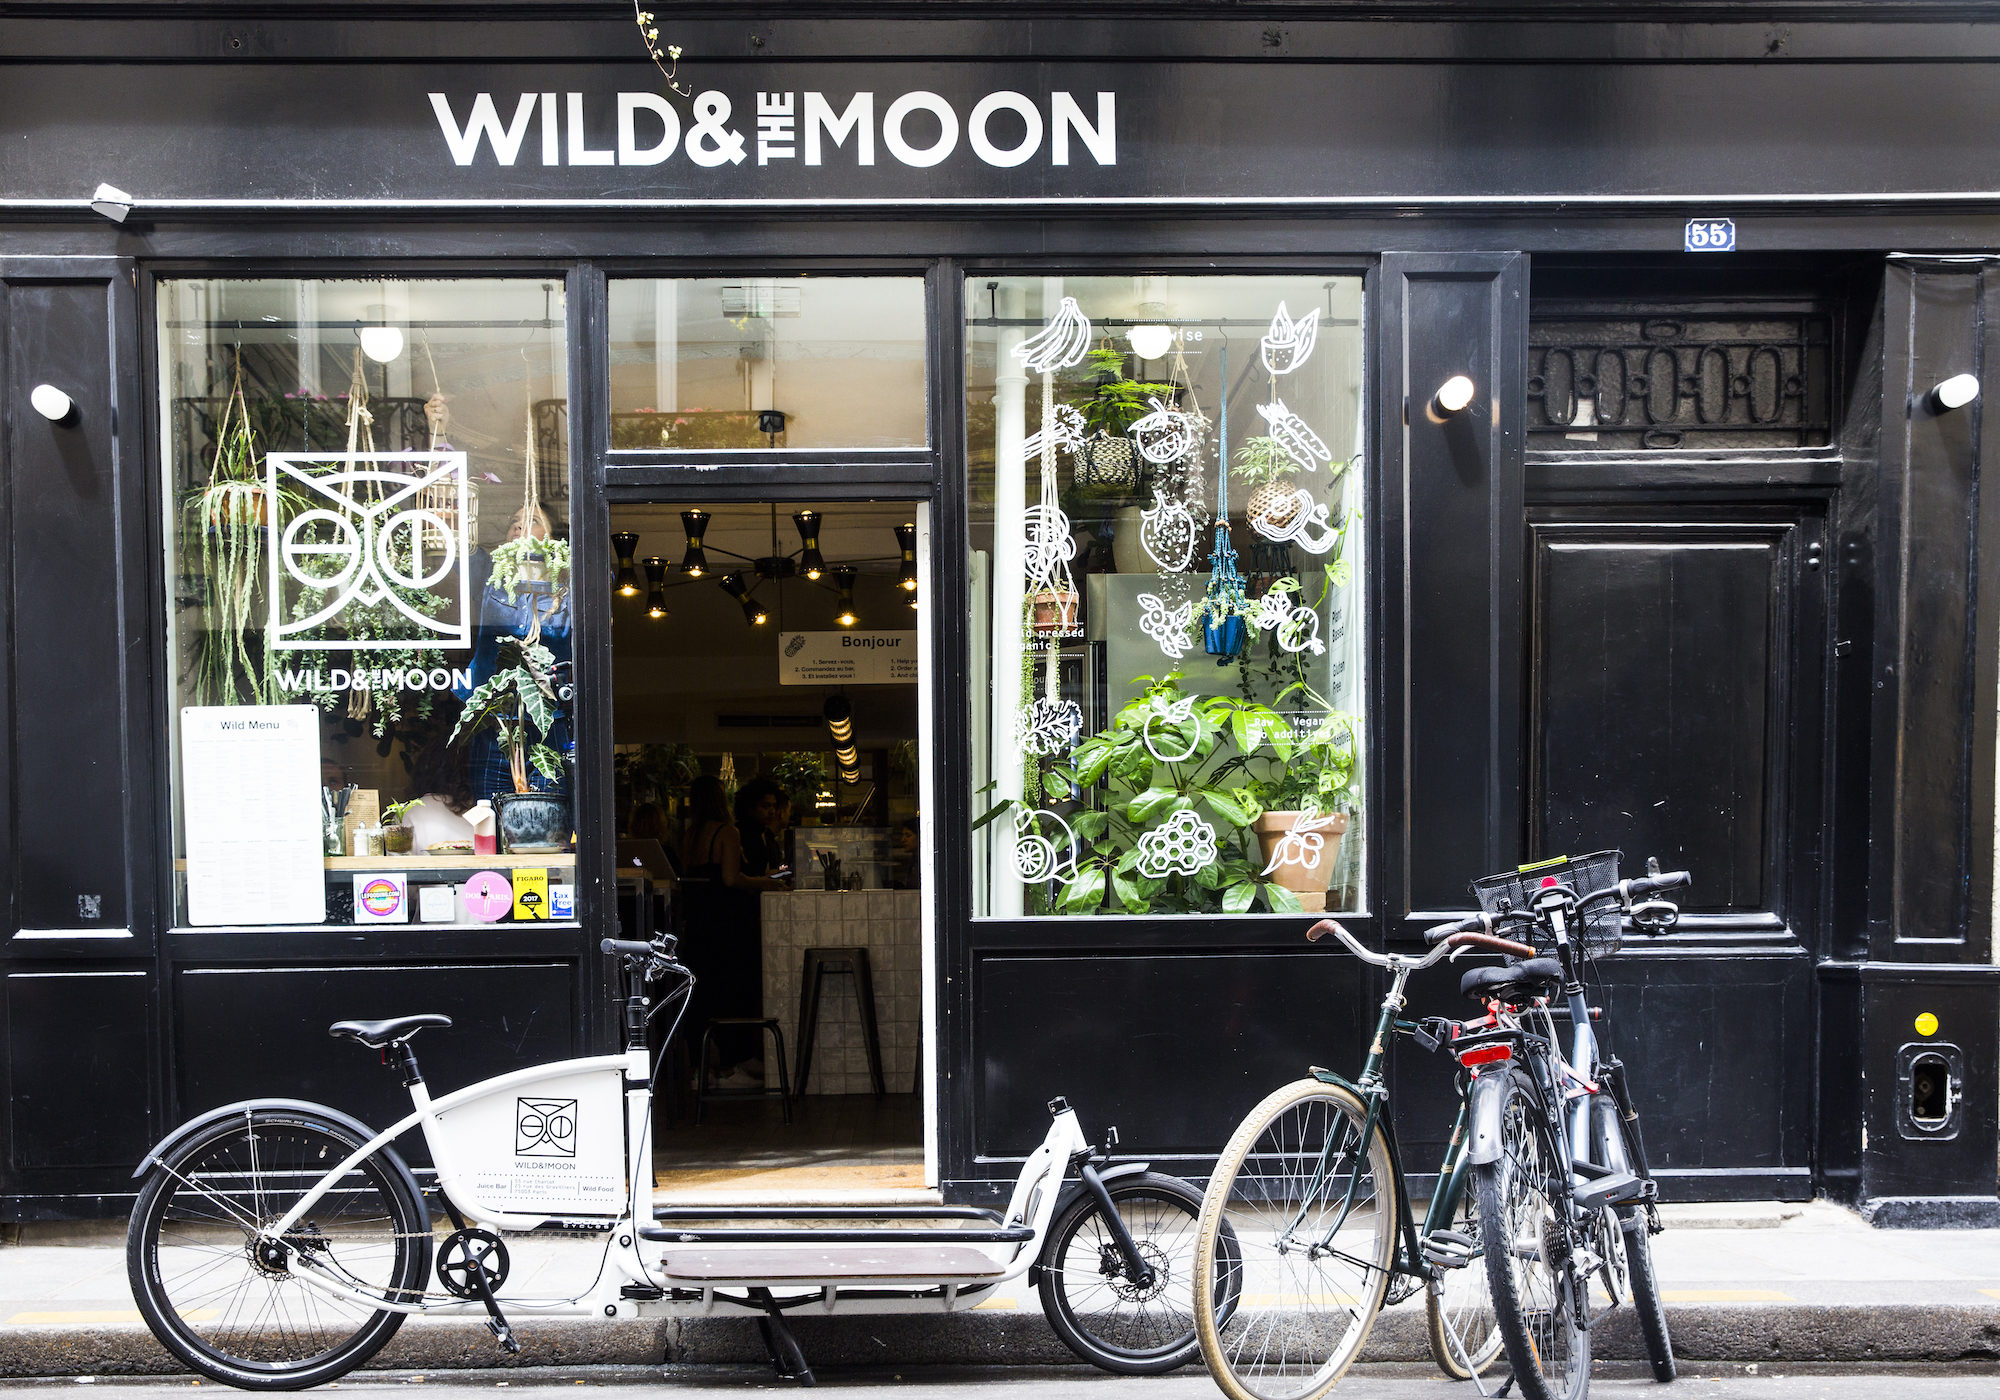 The window of Wild and the Moon gluten-free coffee shop in Paris with its black paneling and plants in the window and bikes parked outside.